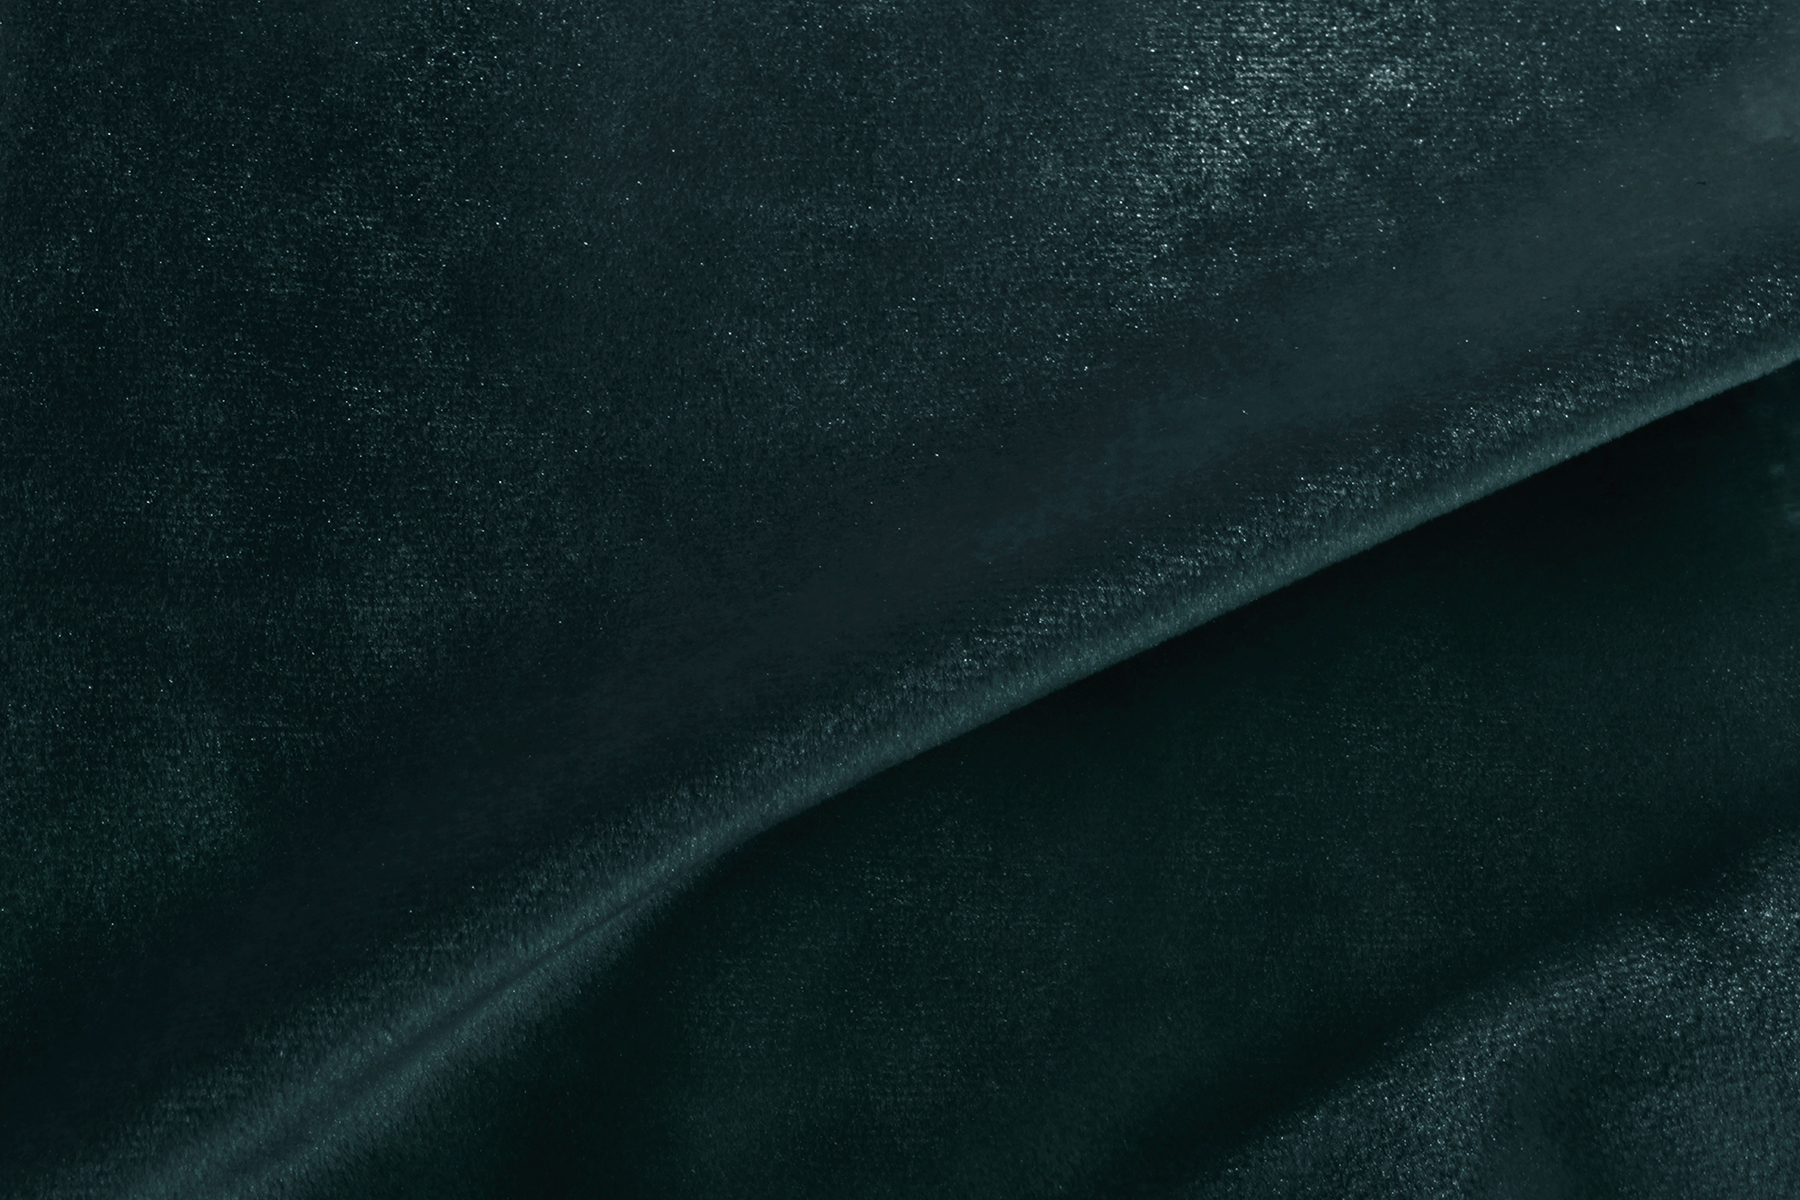 SILKY VELVET 419 Fabric by KOKET